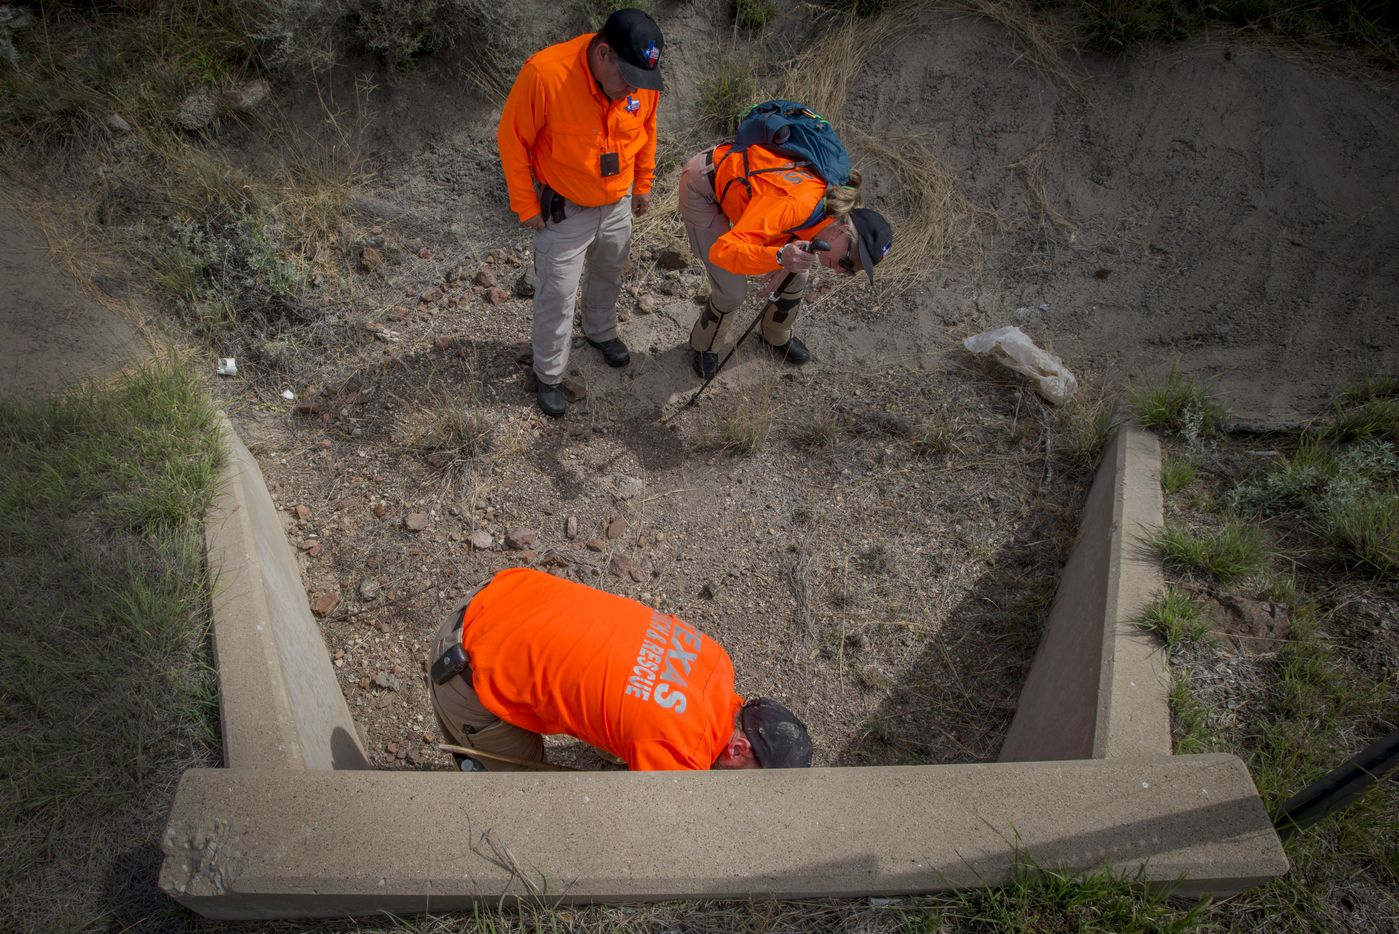 Members of Texas Search and Rescue check out a culvert Saturday, Oct. 22, 2016 during their search for Zuzu Verk.